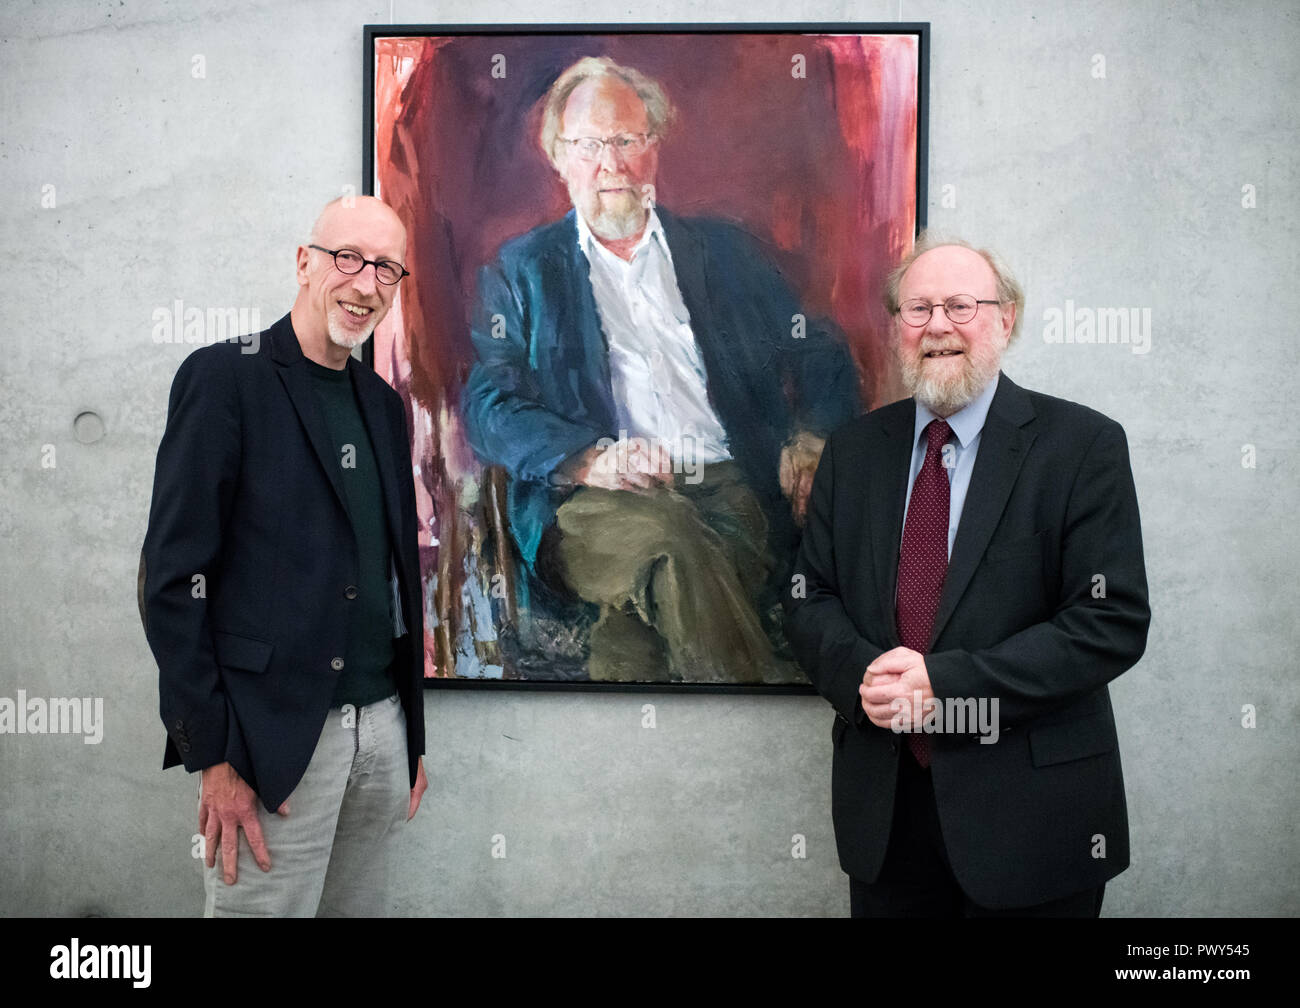 Berlin, Germany. 18th Oct, 2018. The former president of the Bundestag Wolfgang Thierse (SPD) and the artist Johannes Heisig (l) are standing in the gallery of the presidents of the Bundestag in the Paul-Löbe-Haus on the occasion of the inauguration of the Thierse portrait. Credit: Bernd von Jutrczenka/dpa/Alamy Live News - Stock Image